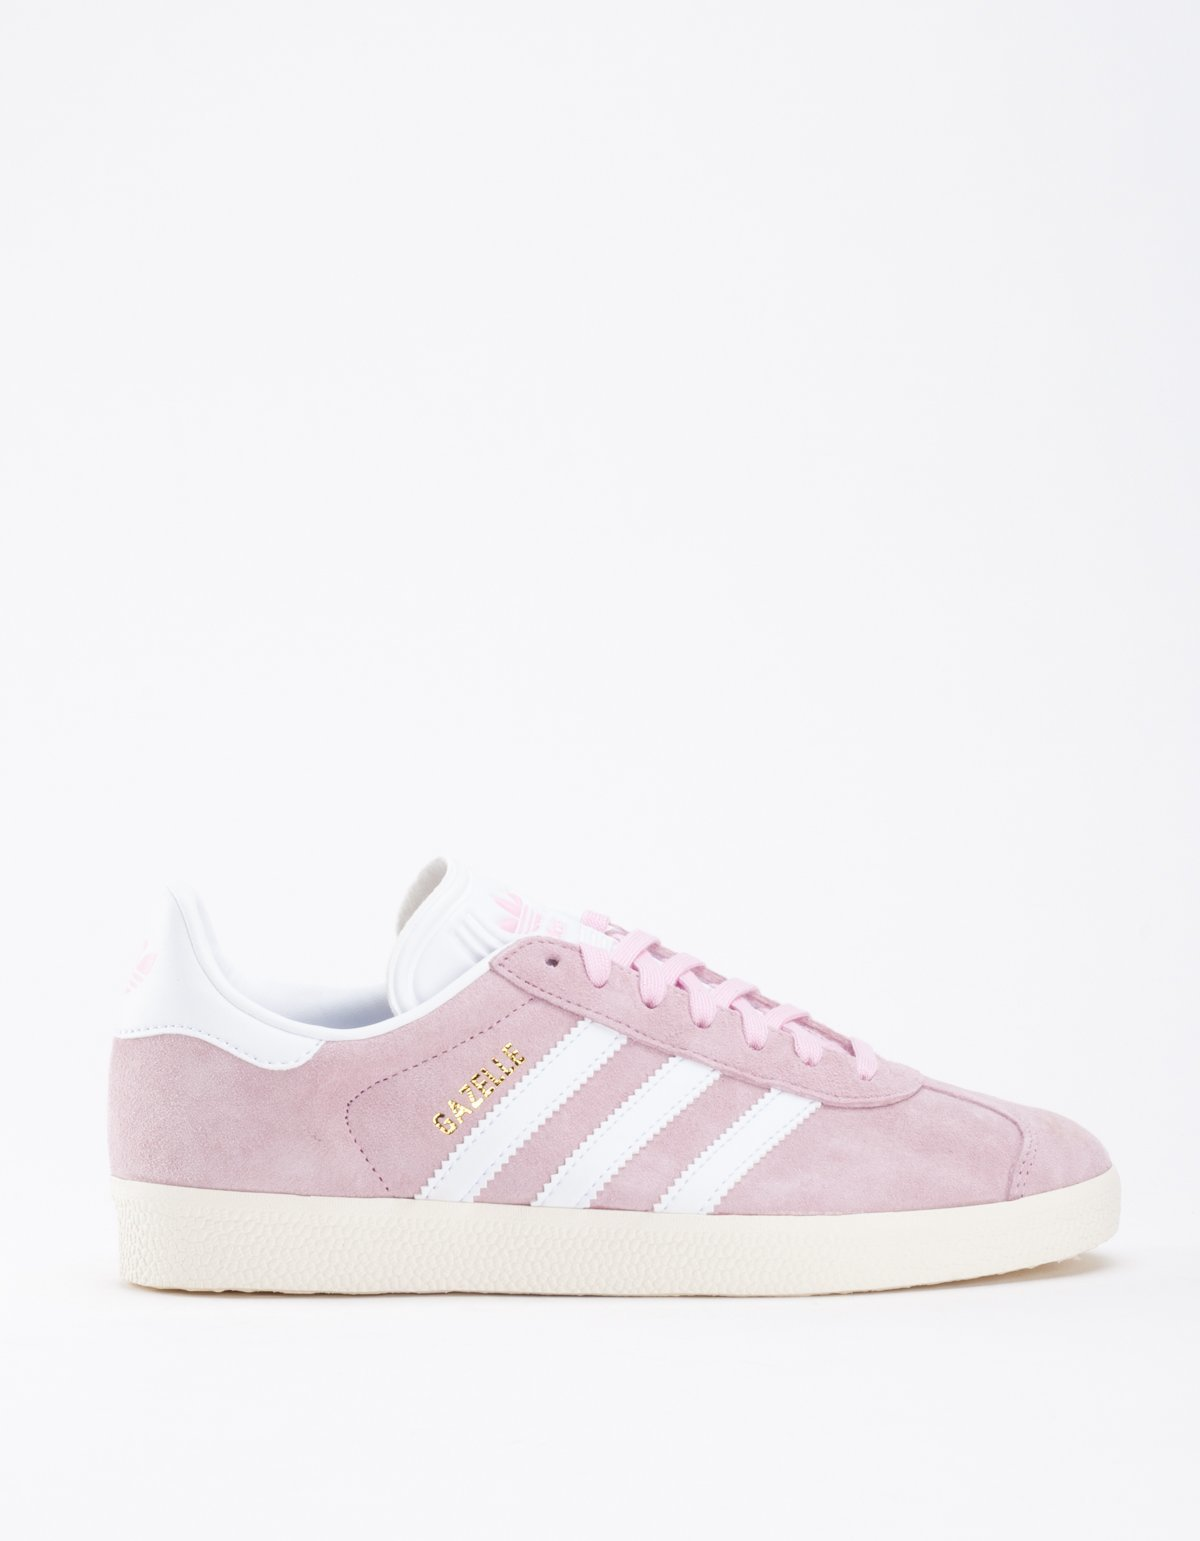 womens adidas gazelle pink and white